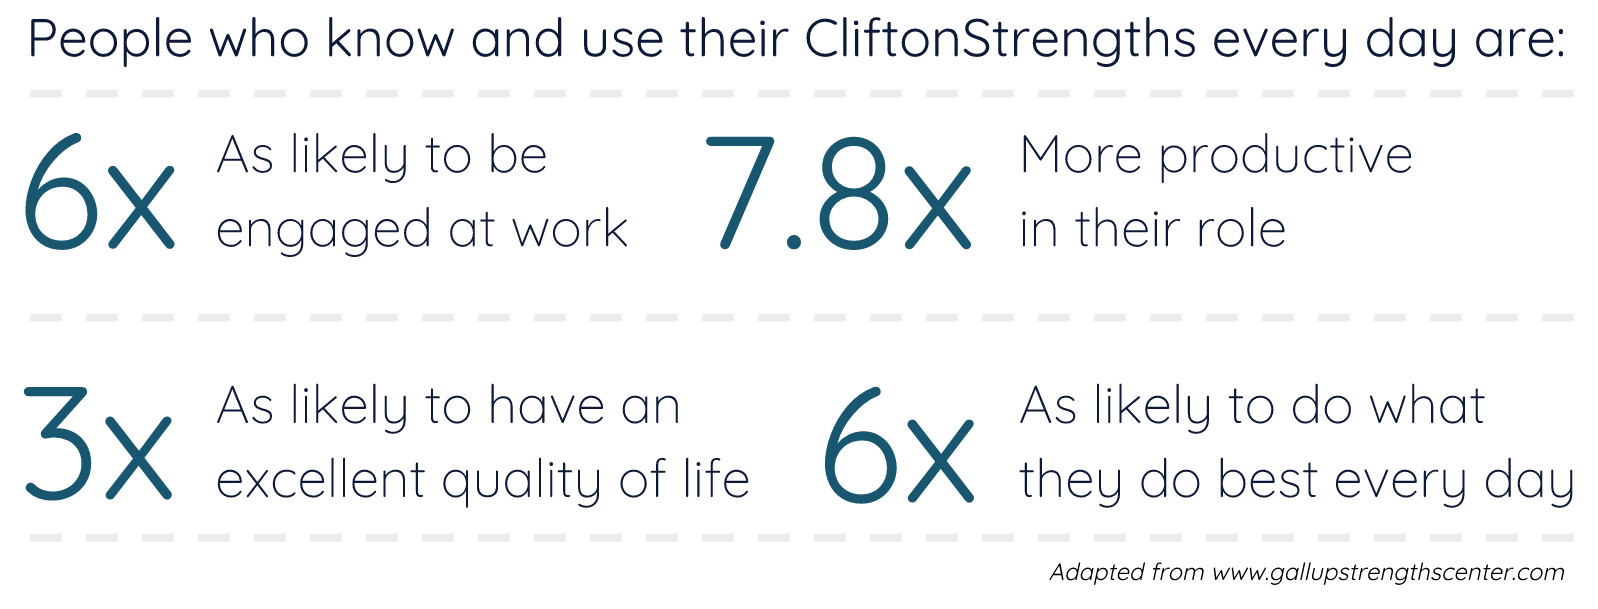 People who know and use their CliftonStrengths